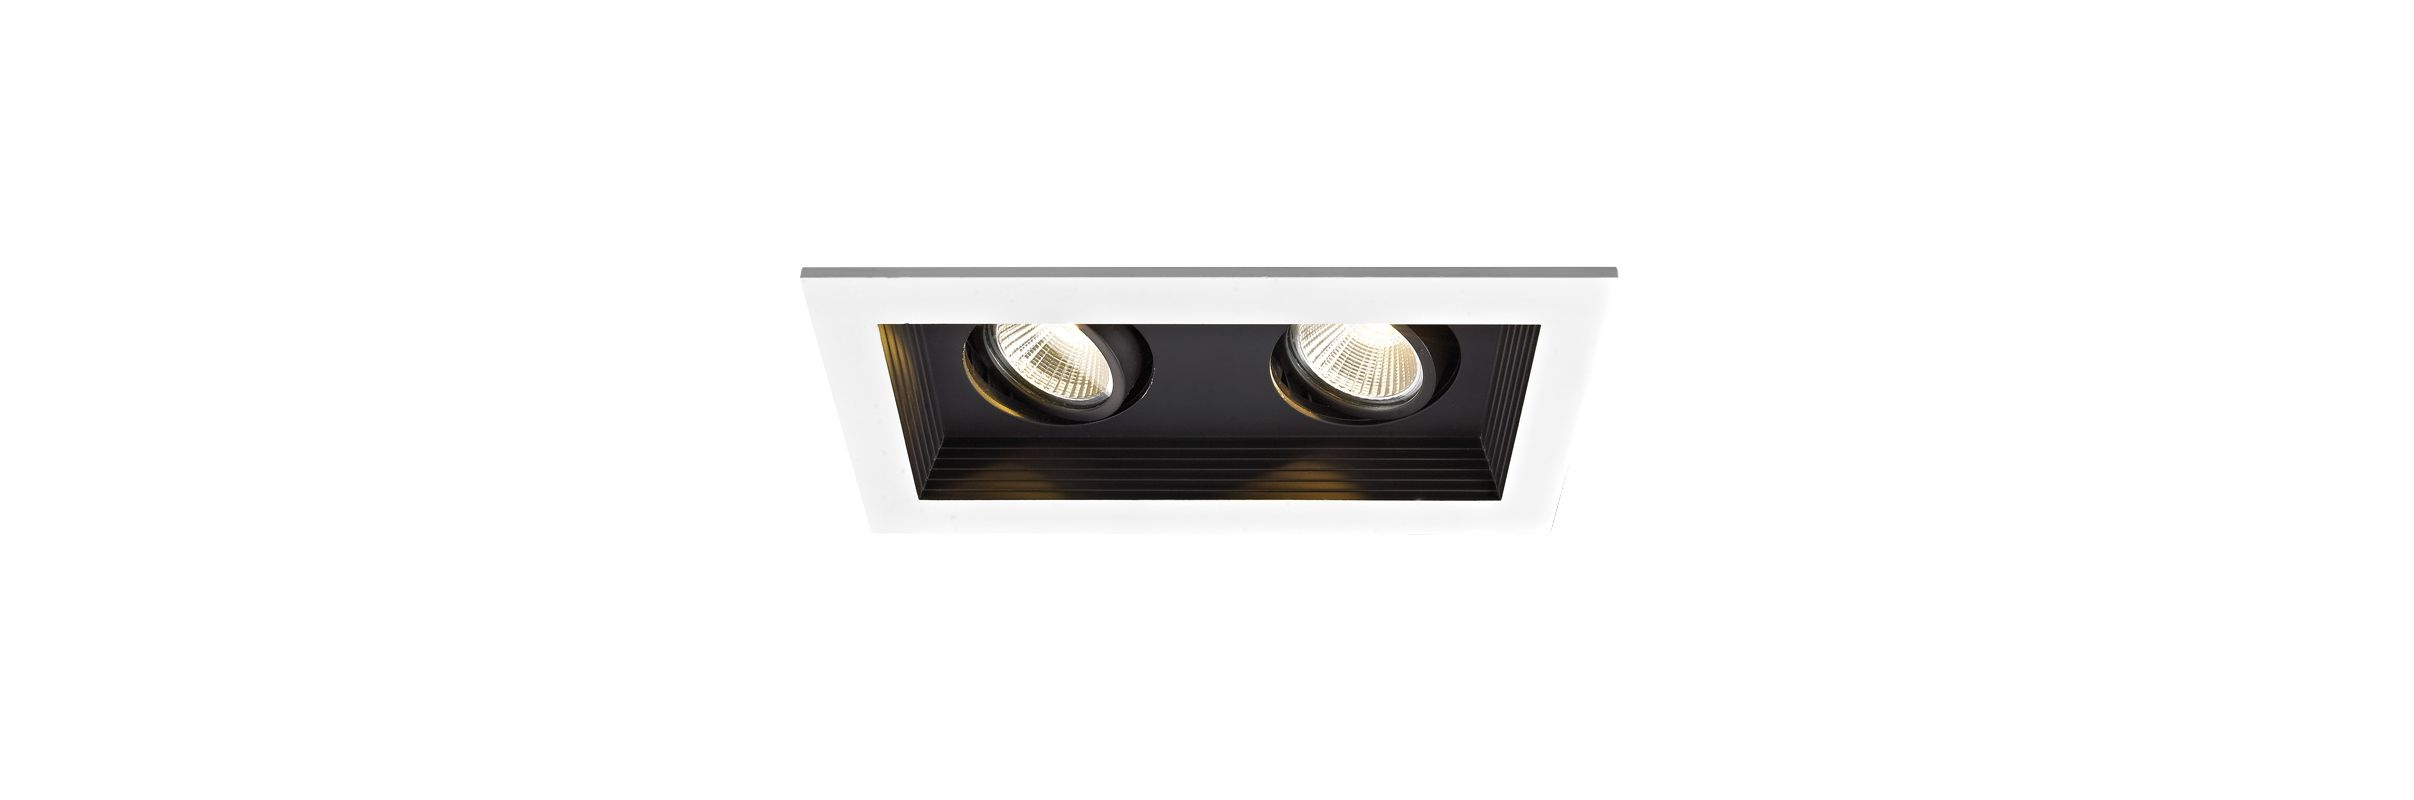 WAC Lighting MT-3LD211R-F30 Remodel 1 Light Mini LED Recessed Lighting